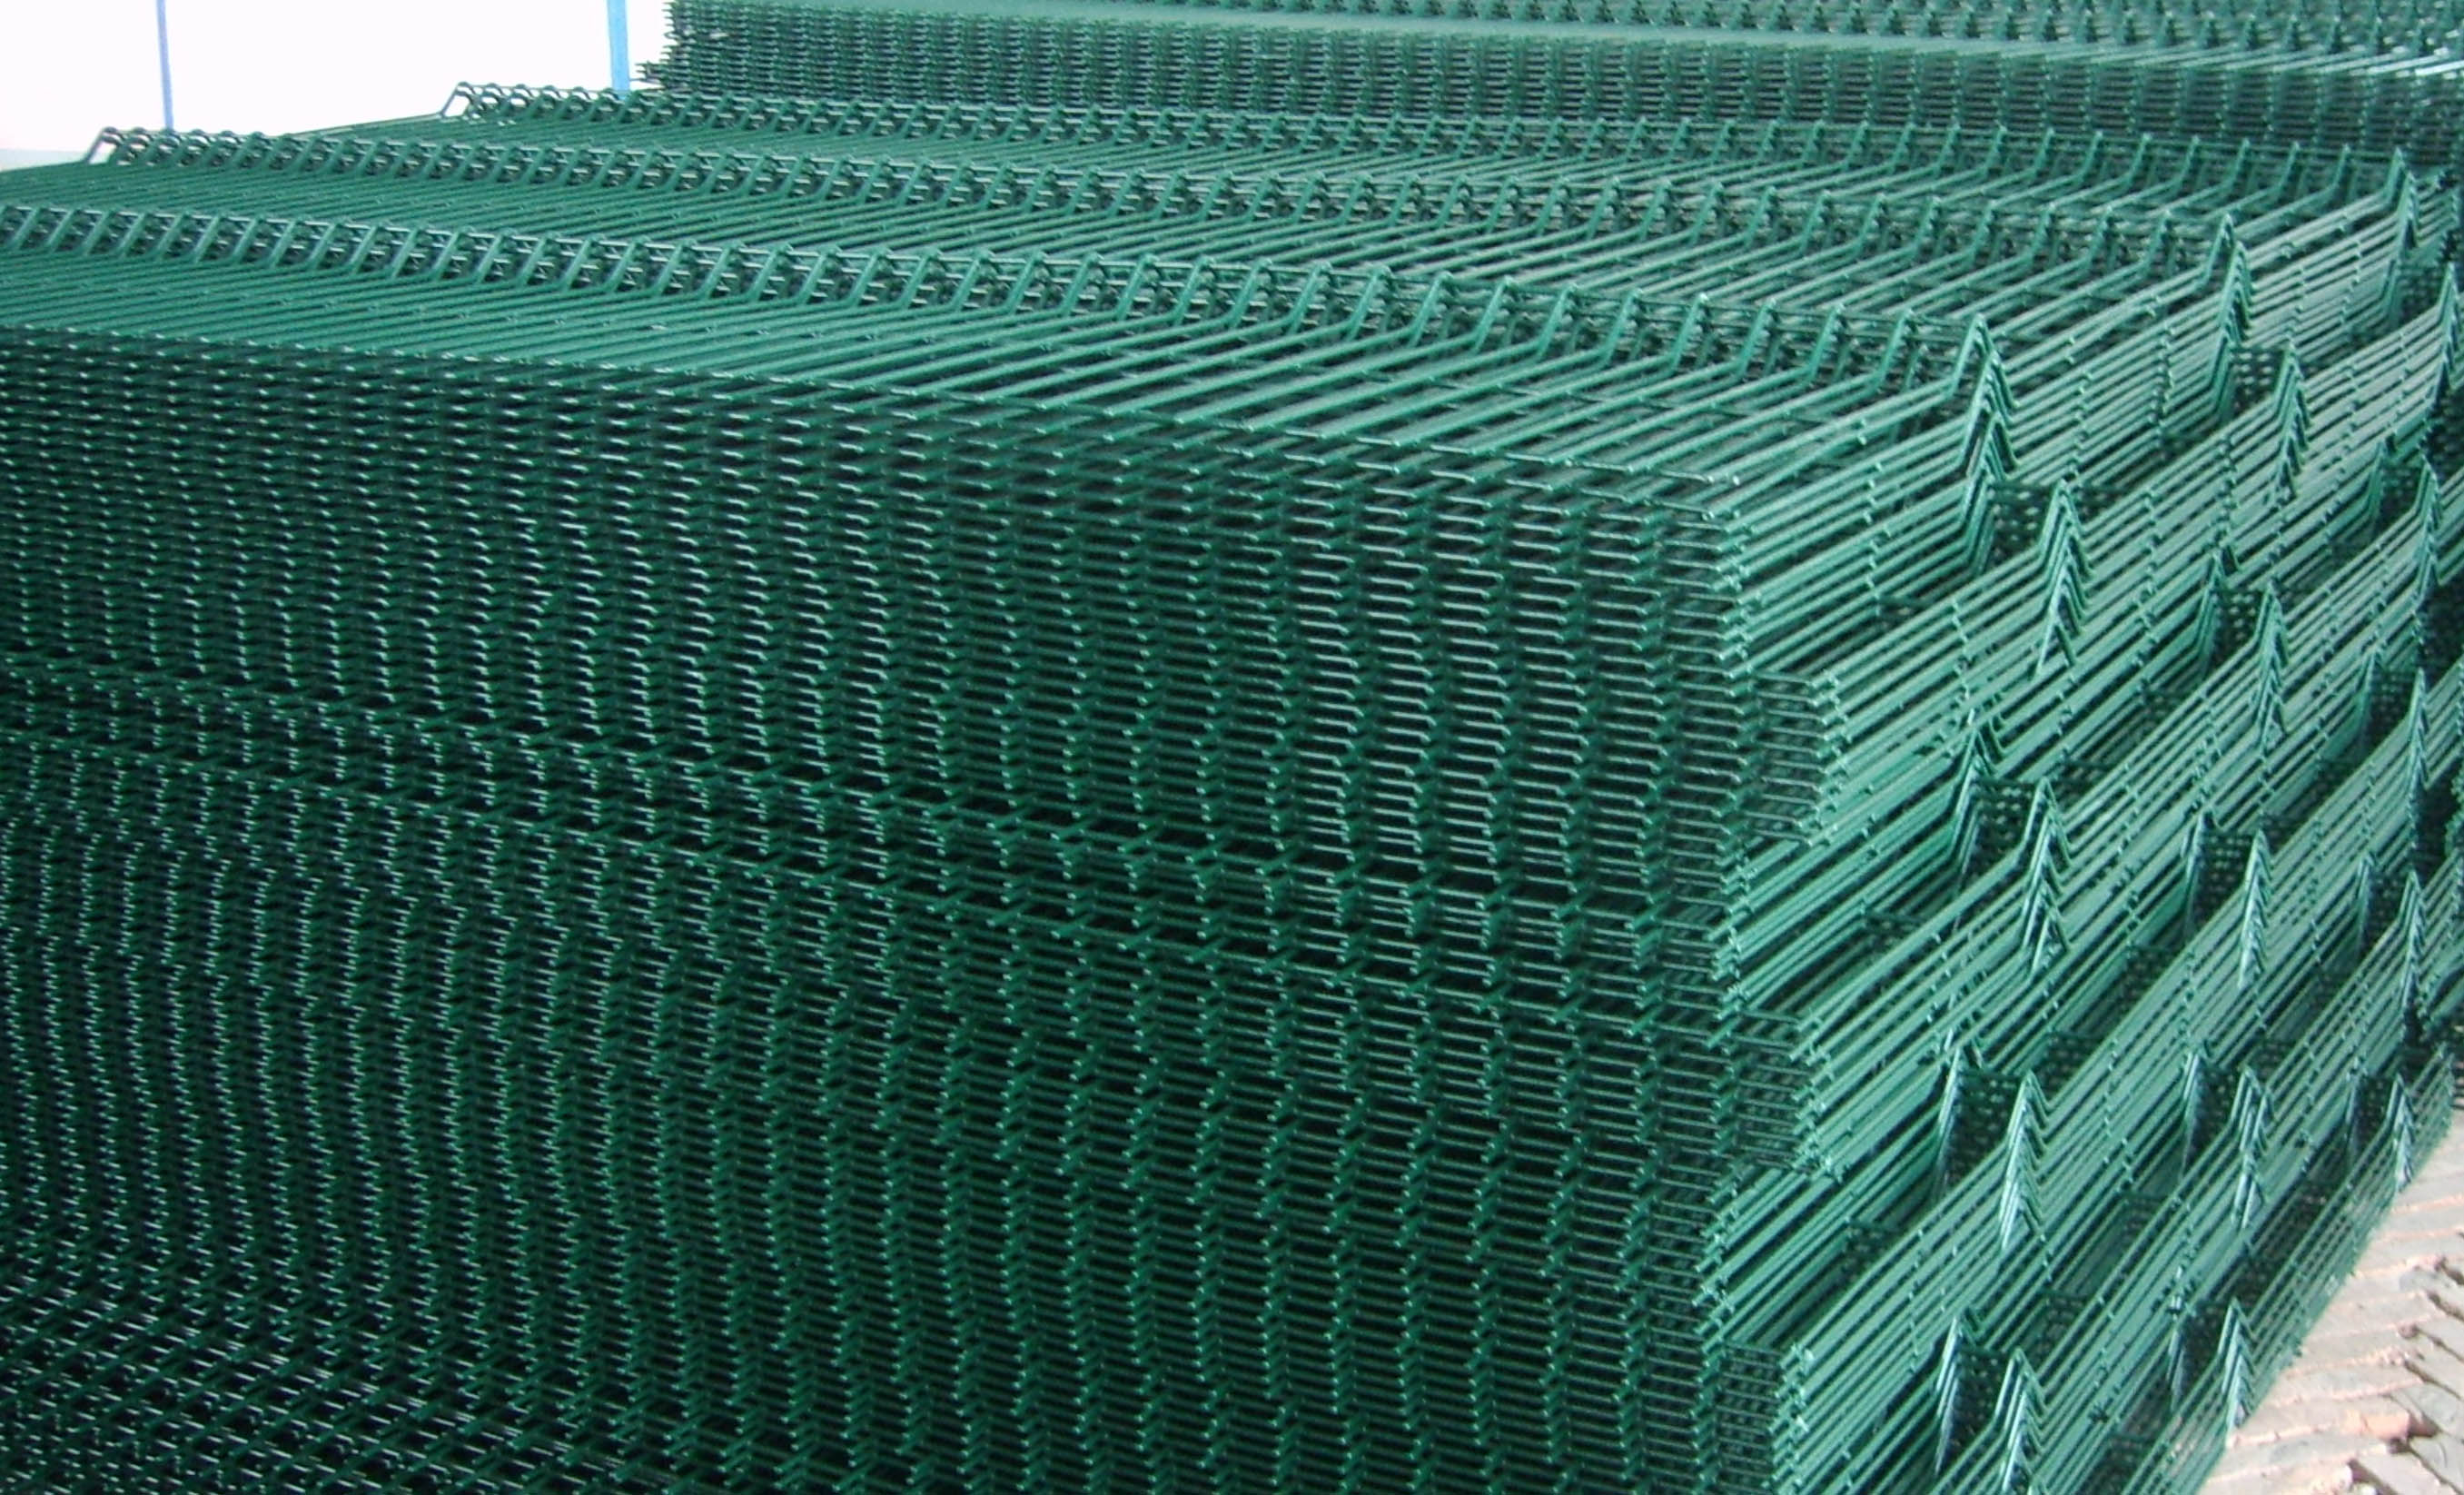 Fencing materials & supplies